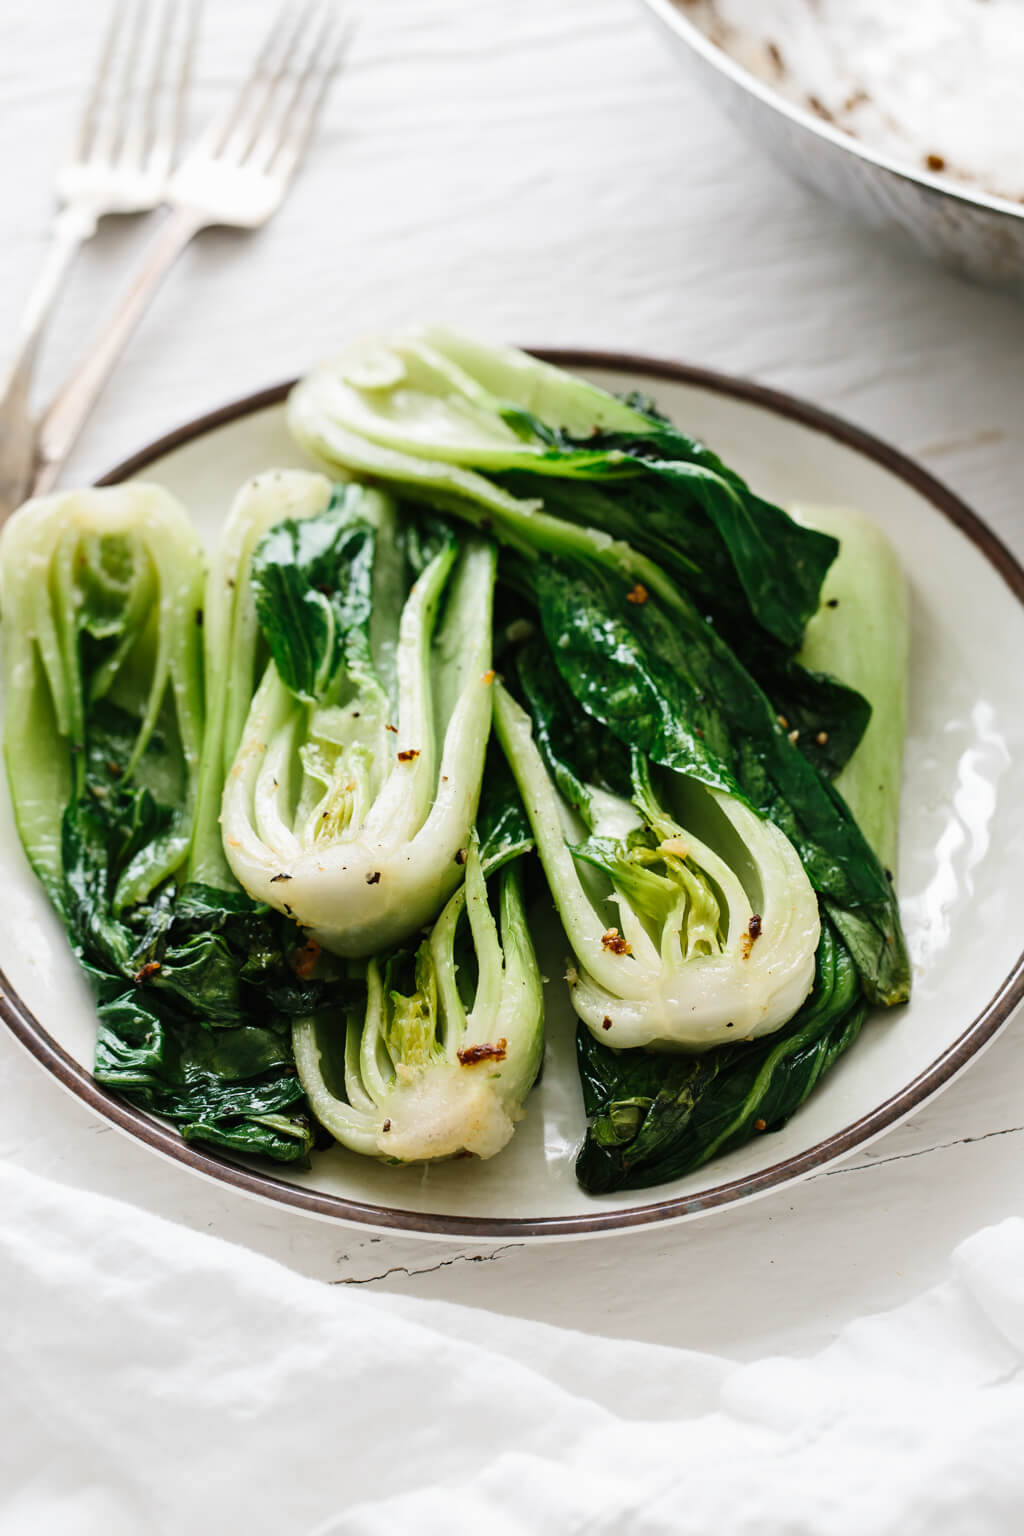 Bok choy cooked with garlic and ginger in a quick stir-fry recipe. It's nutritious, tasty and packed with health benefits.